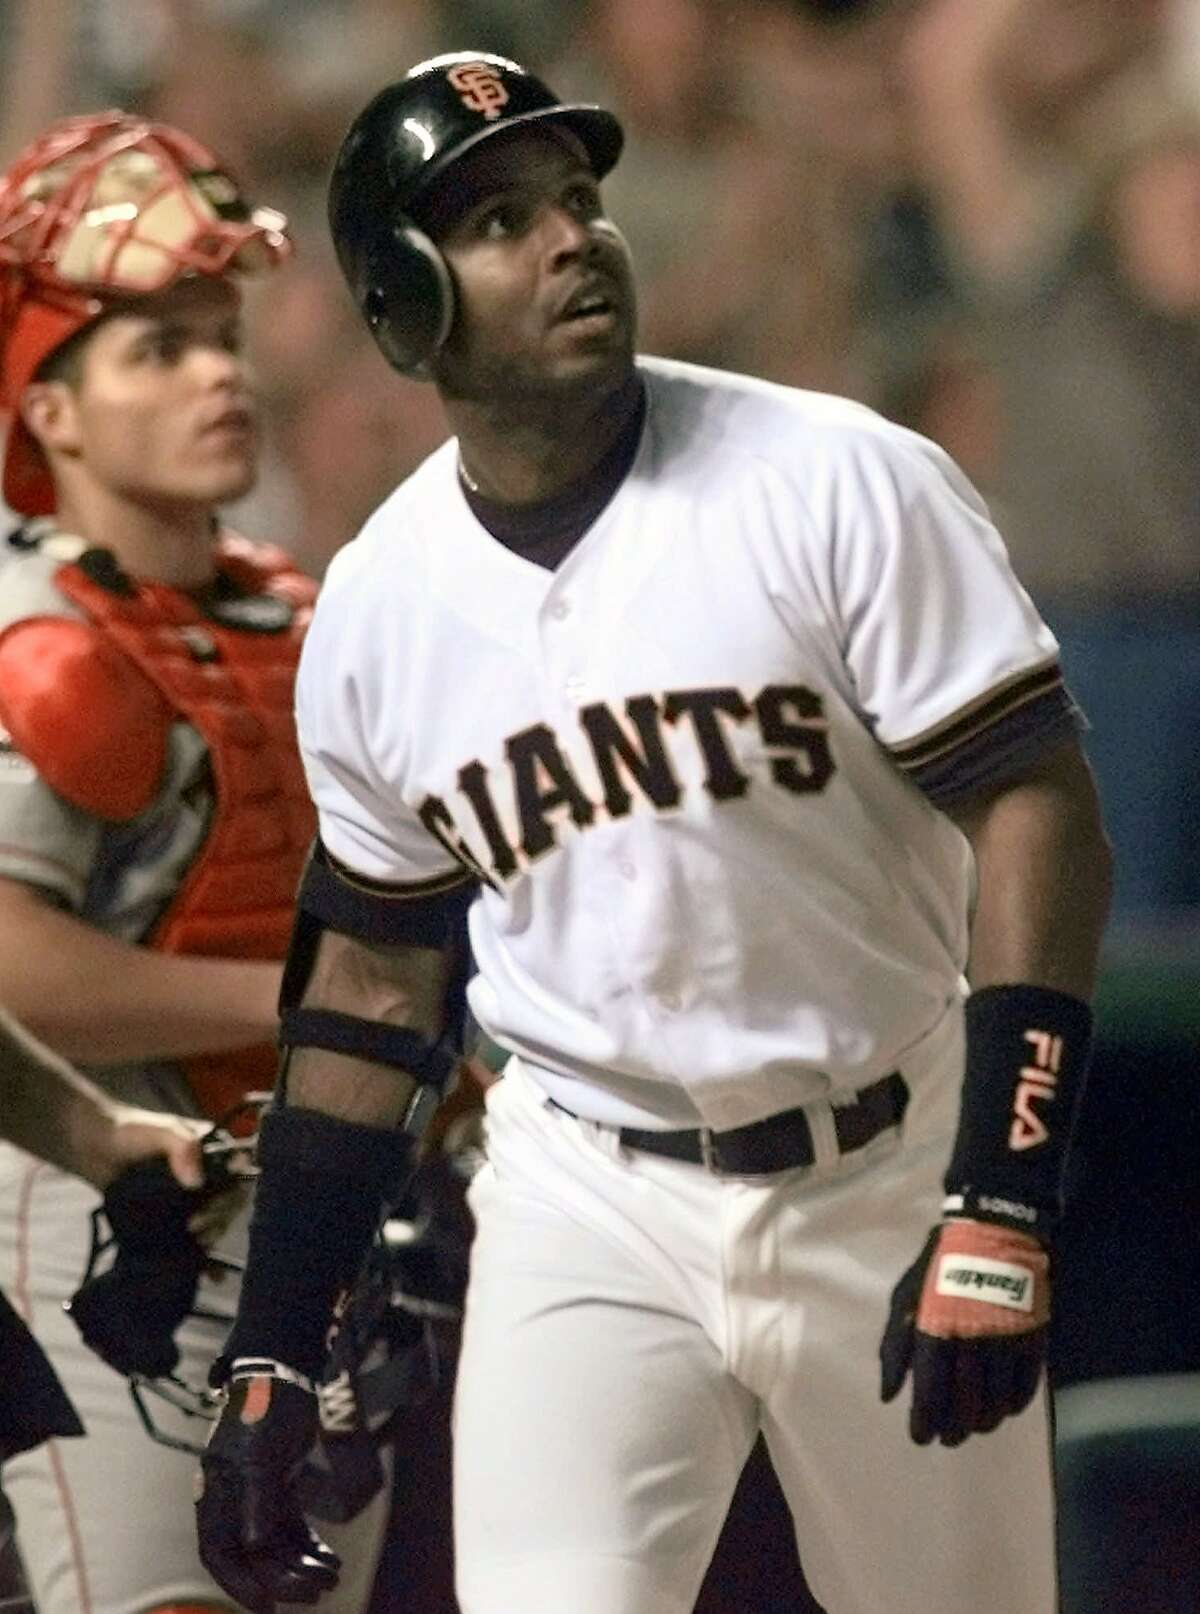 San Francisco Giants' Barry Bonds watches his fifth inning three-run homer during the 69th annual All-Star game at Denver's Coors Field, Tuesday, July 7, 1998. (AP Photo/David Zalubowski)